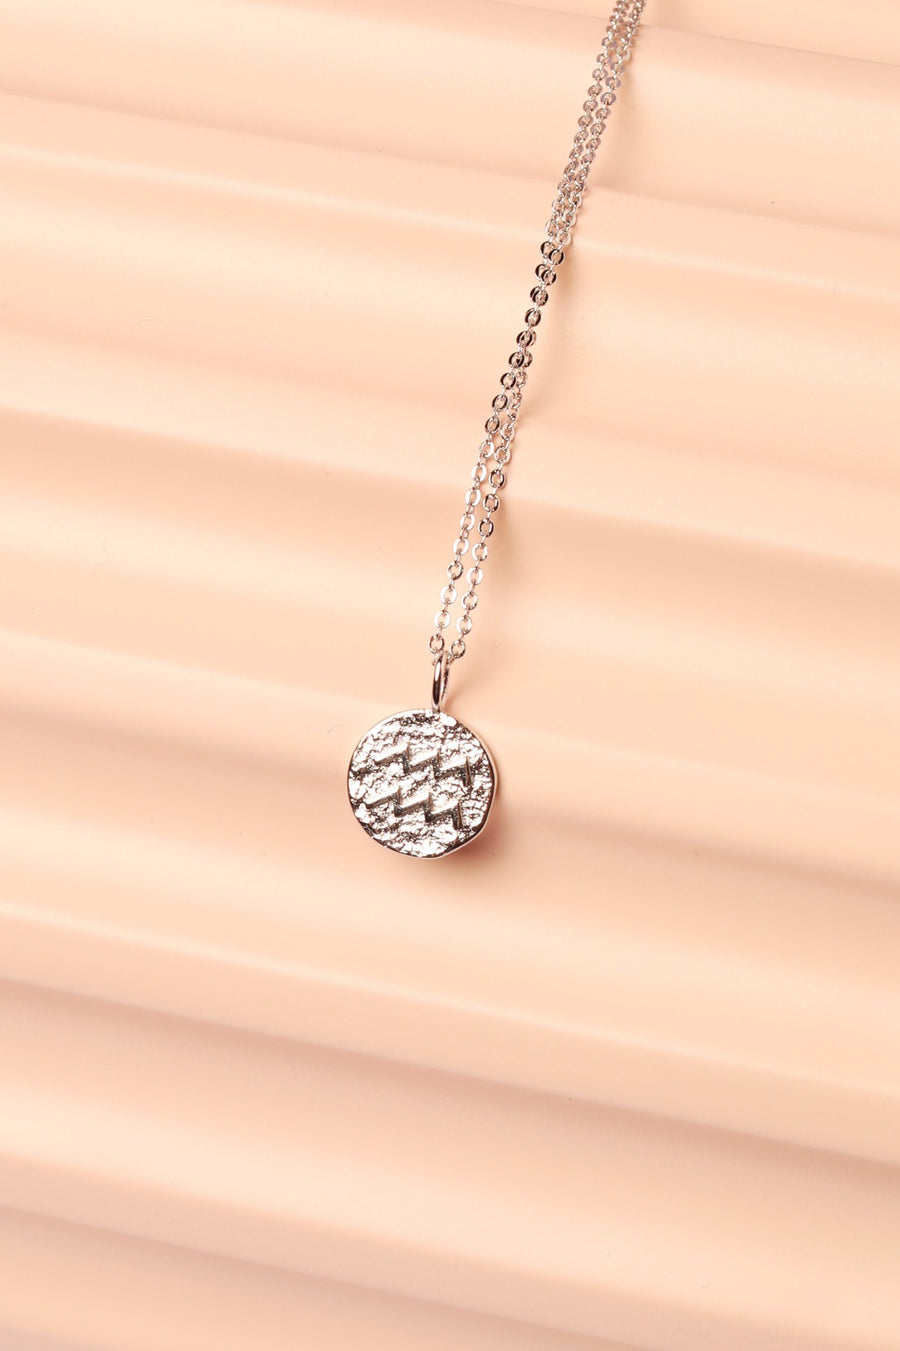 Silver Zodiac Charm Necklace Necklace Mulberry & Grand Aquarius